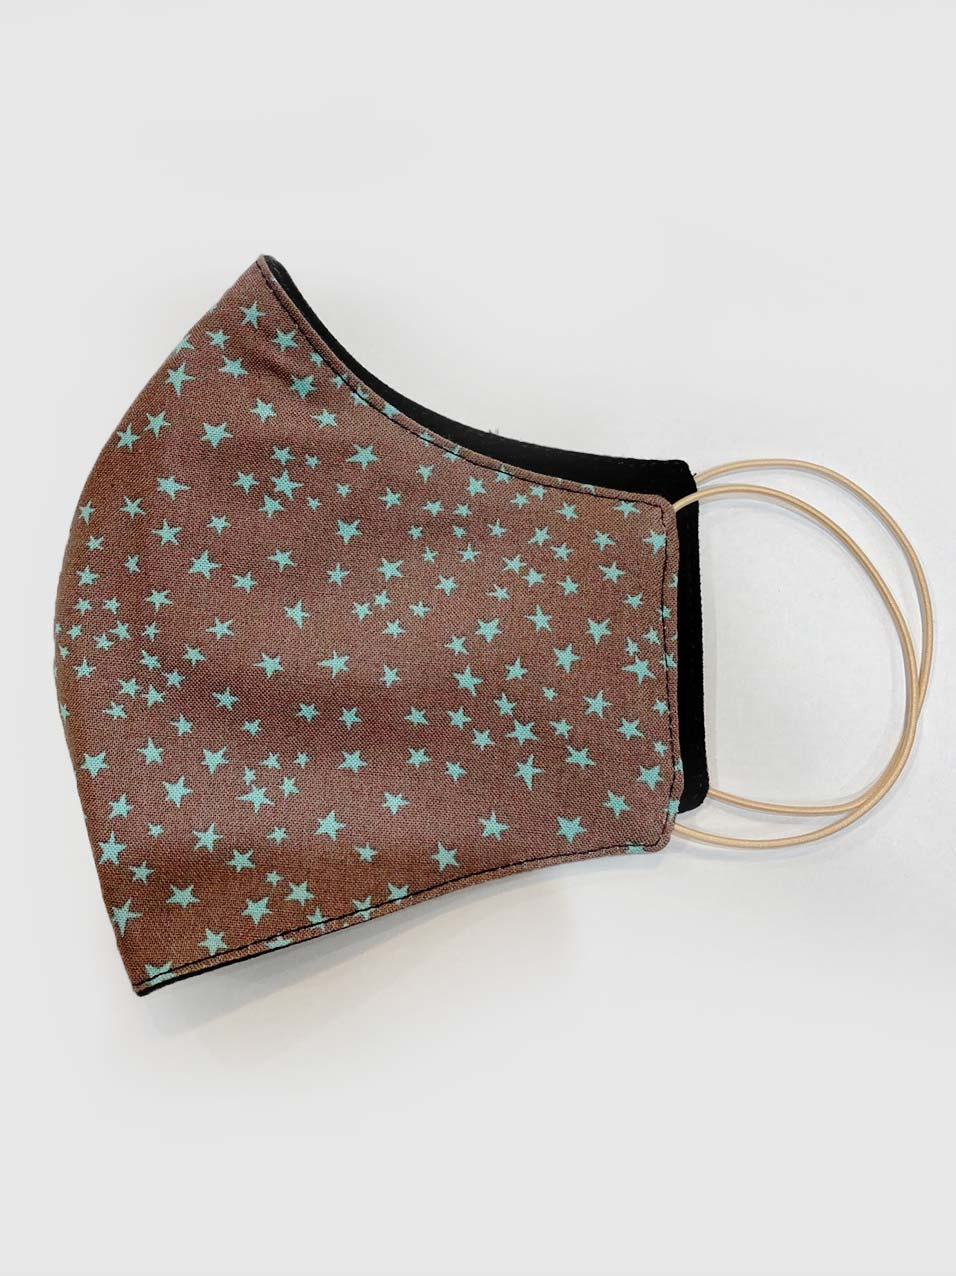 Designer reusable face mask with star pattern